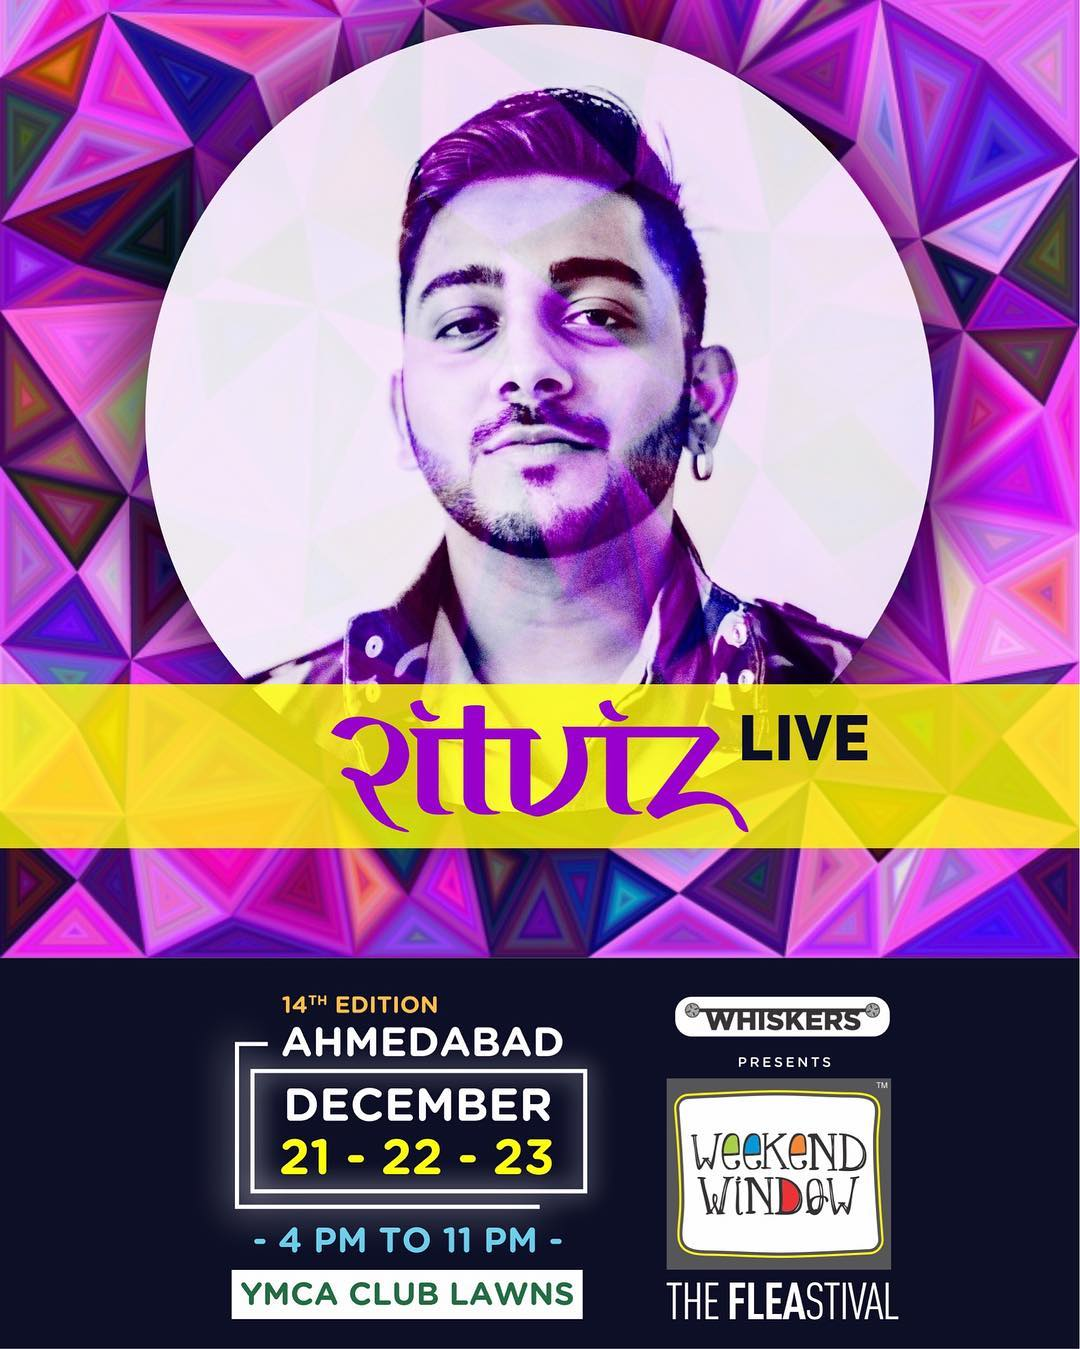 'HUM TO UDD GAYE'.... Can't wait to have him perform at the happiest festival of Ahmedabad.. Get ready to sing and sway with shopping, food and music! . . . #weekendwindow #theFLEAstival #shopping #food #music #kids #entertainment #fun #happiness